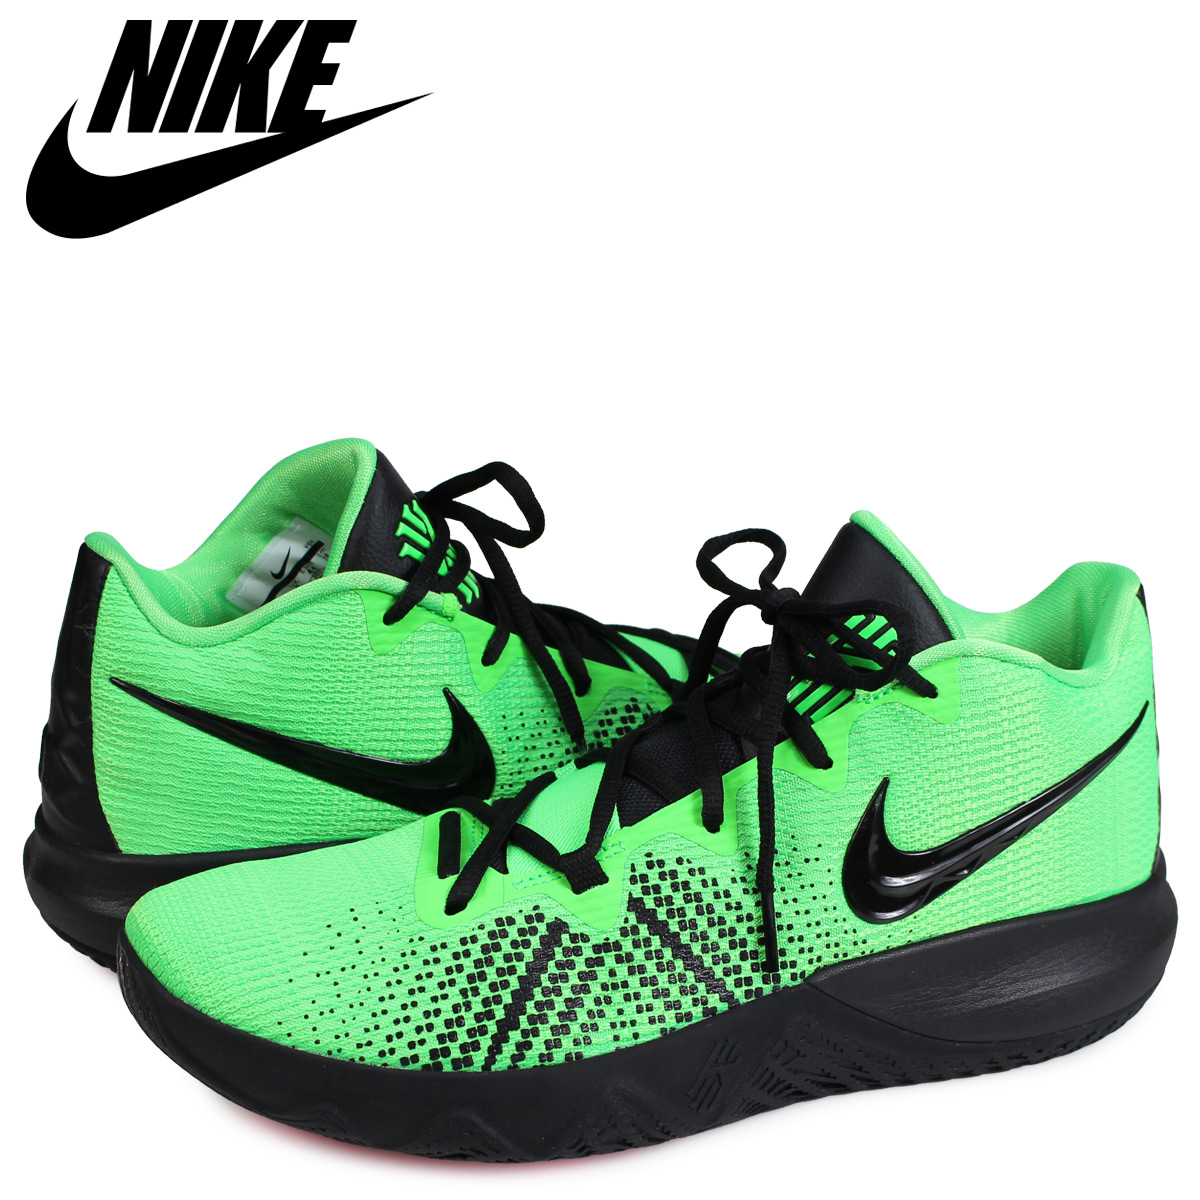 newest collection 9f47f 971af NIKE Nike chi leaf rat lap sneakers men KYRIE FLYTRAP green AA7071-300